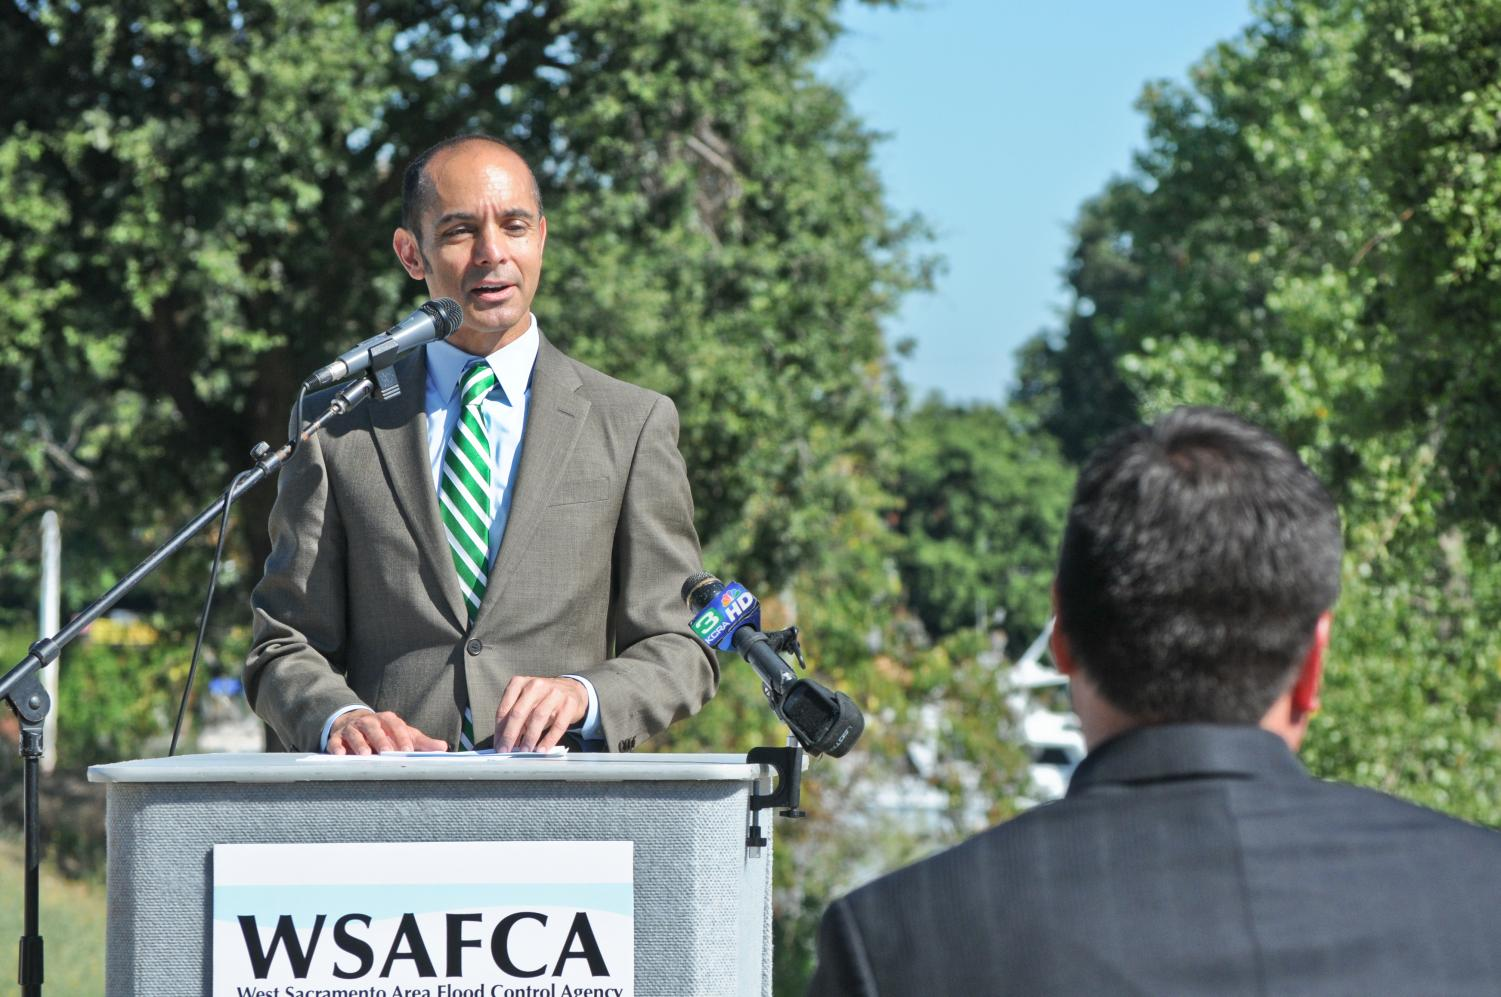 West Sacramento Mayor Christopher Cabaldon speaks at a groundbreaking ceremony for levee improvement in 2011. Cabaldon was recently hired as an endowed professor at Sac State.